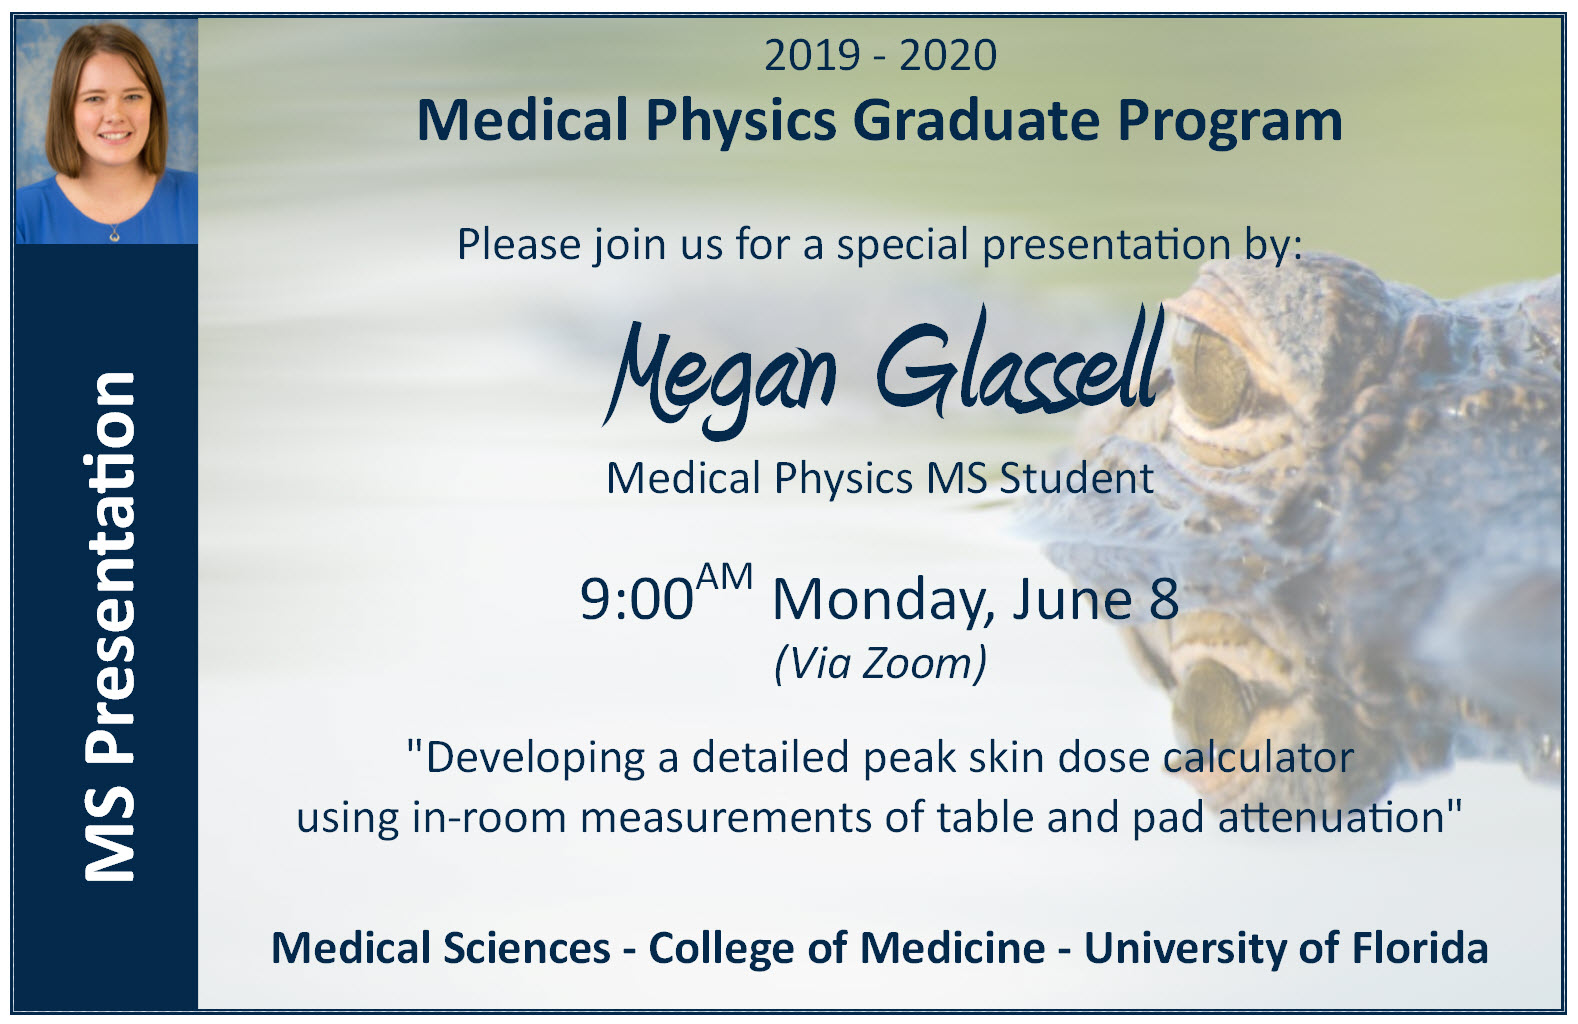 Megan Glassell MS Presentation Announcement